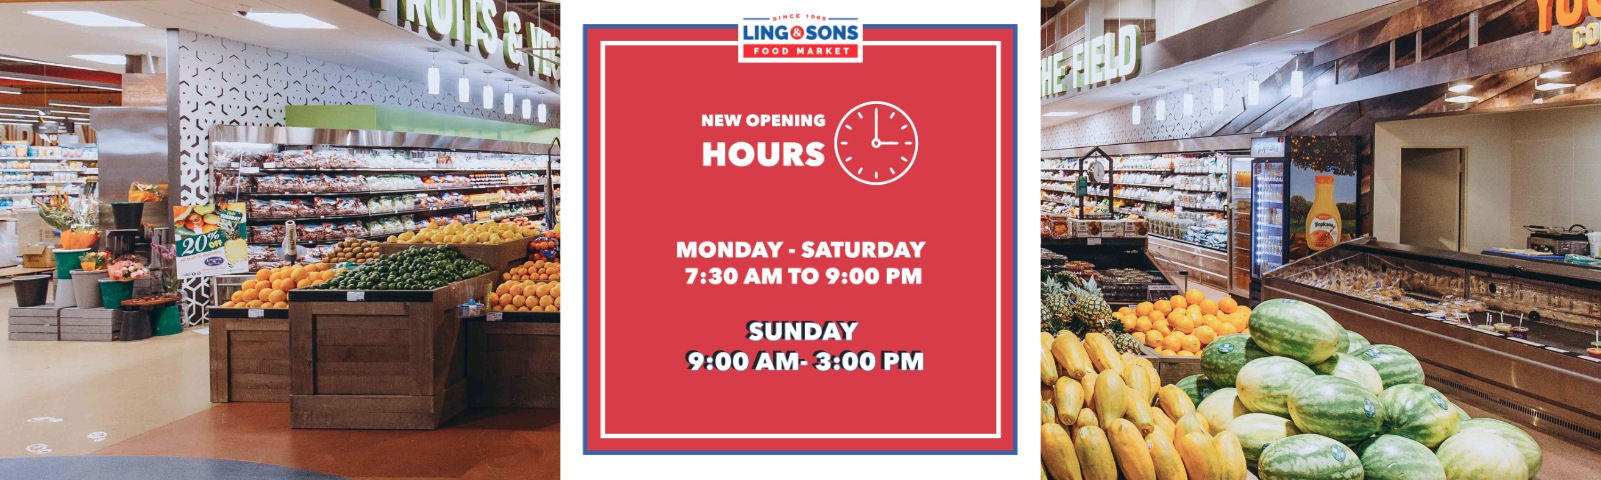 Sunday Hours Ling and Sons slide